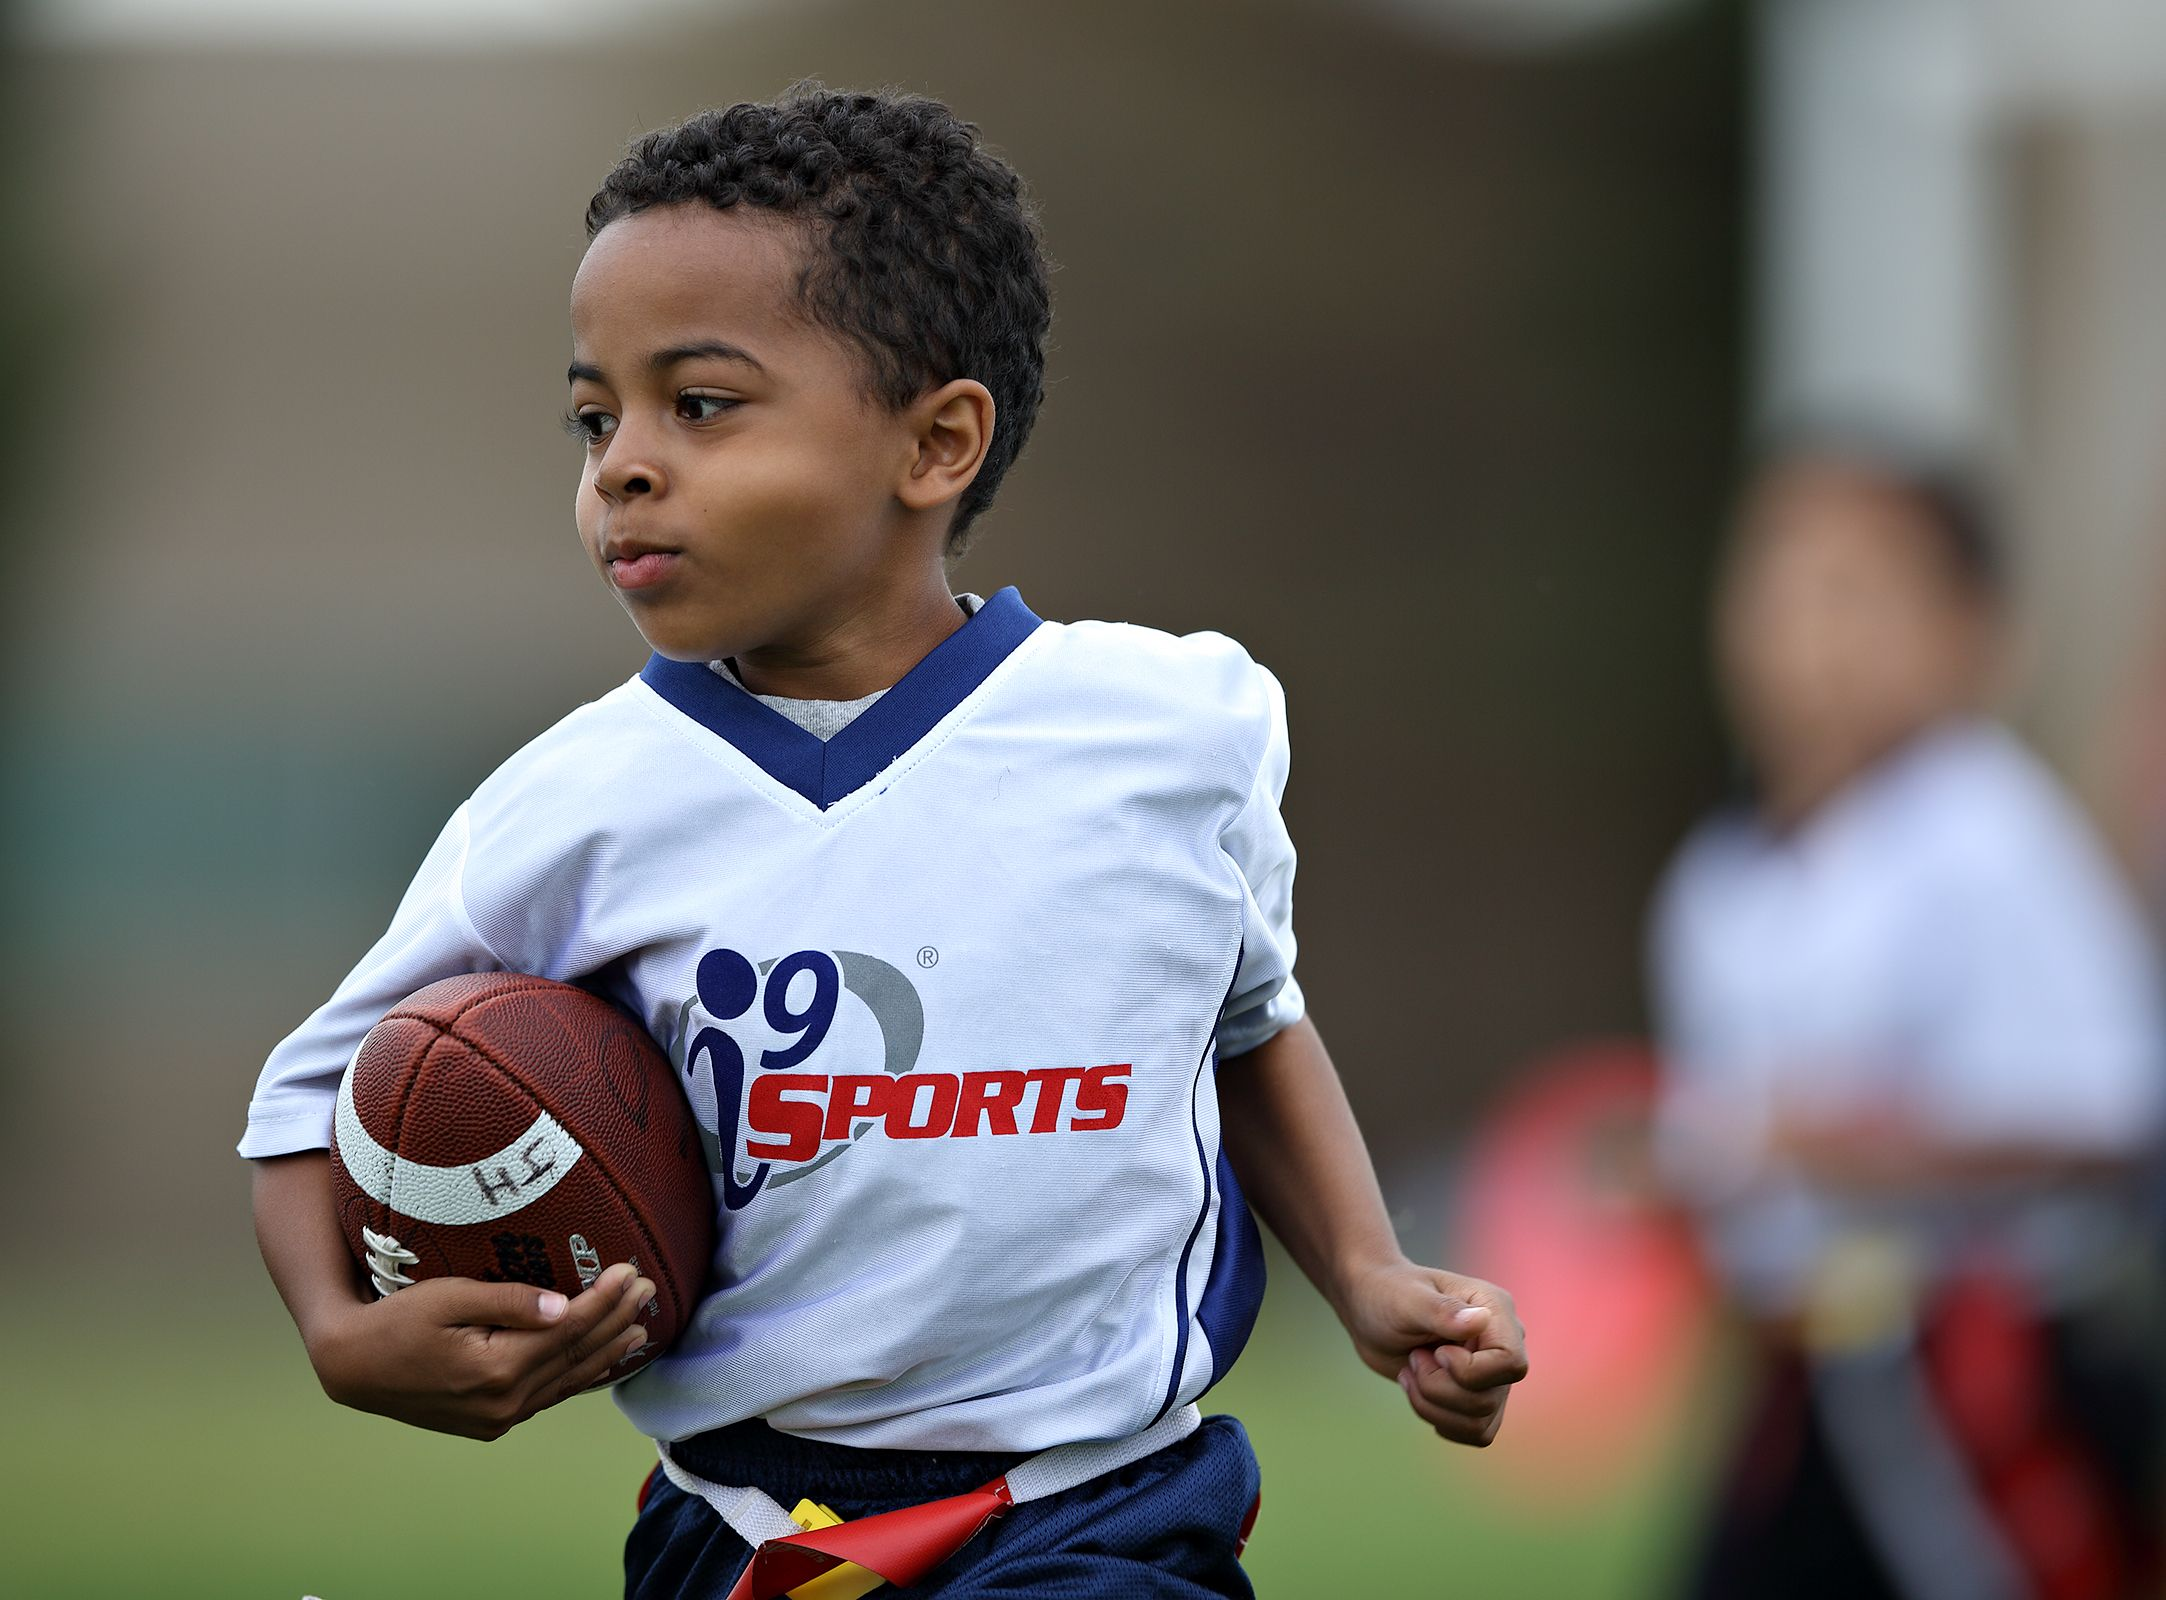 He could go all the way i9sports flagfootball sports